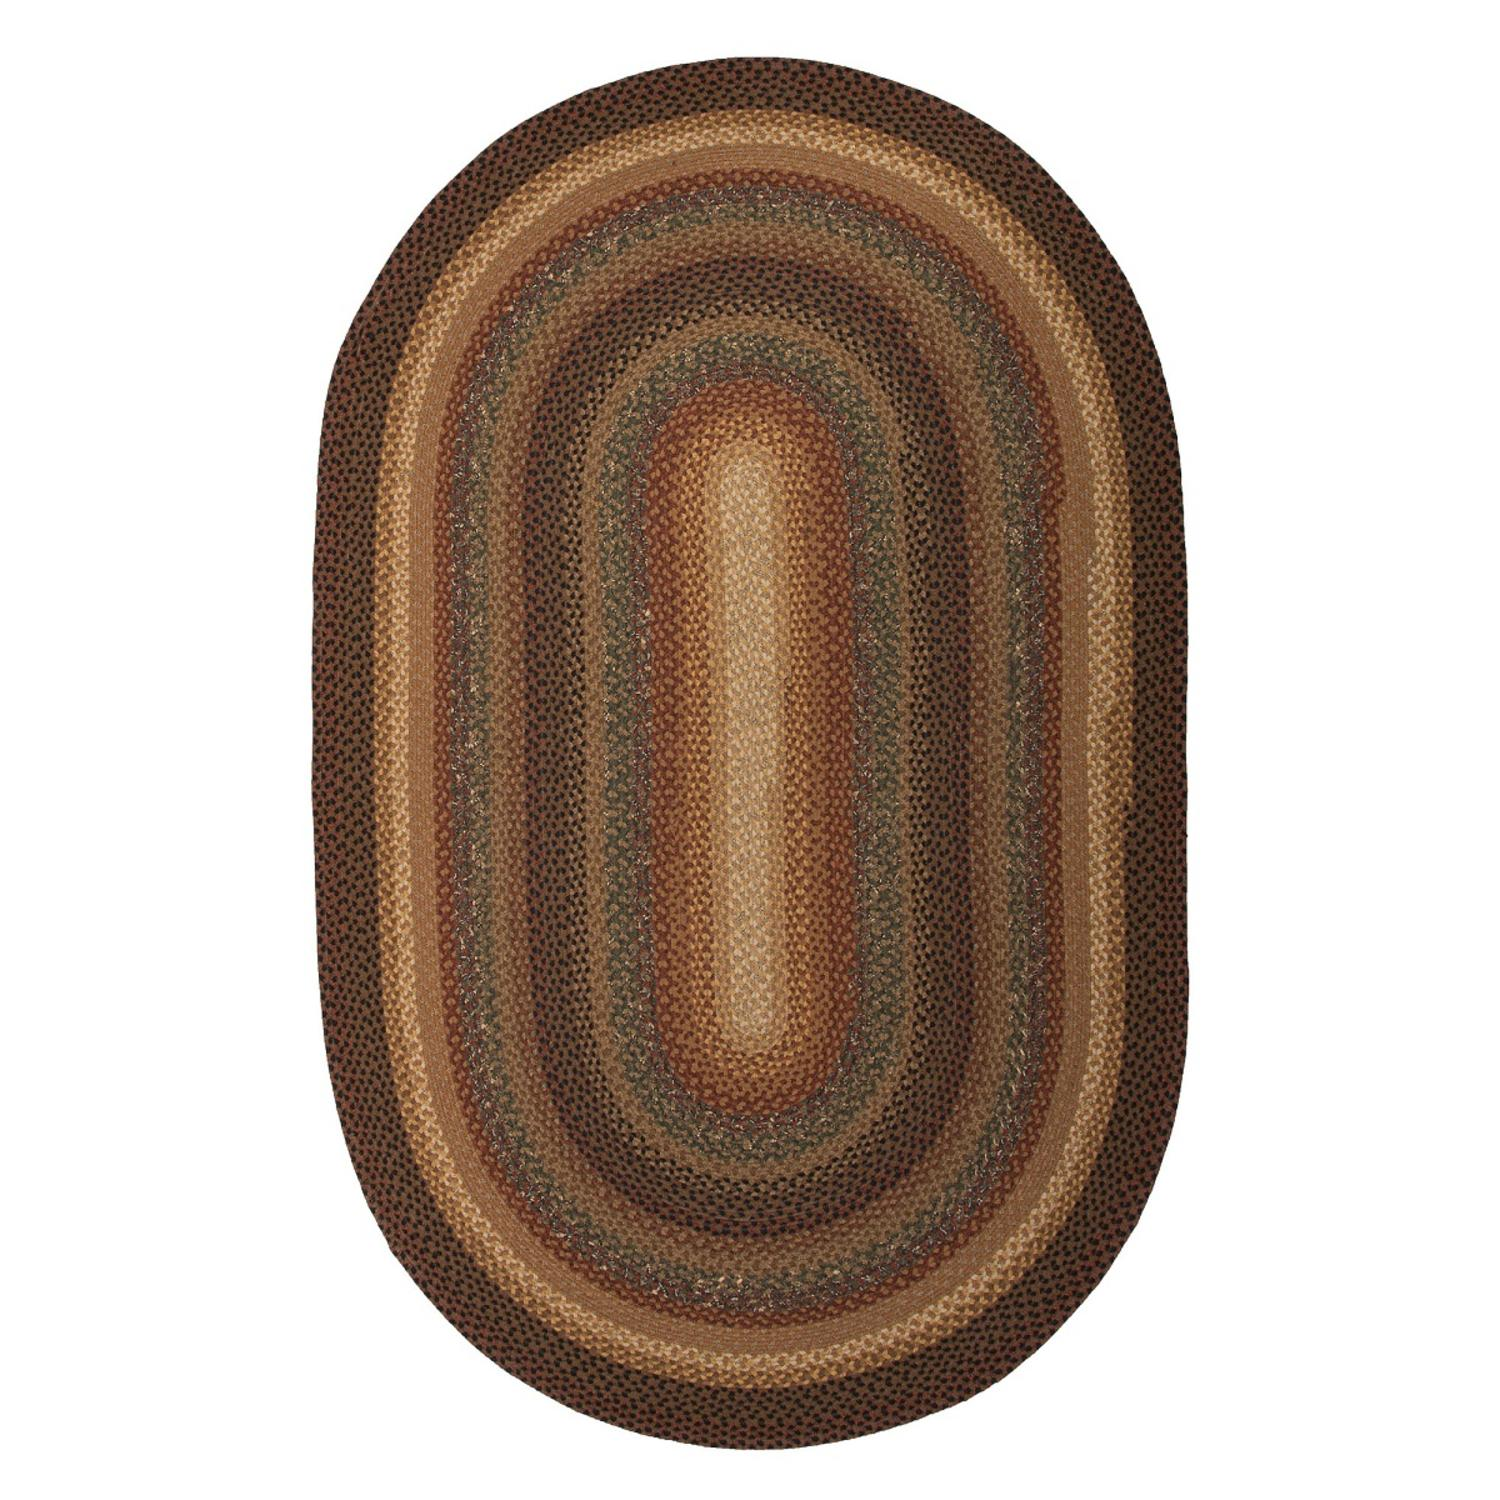 2.5' x 6' Copper, Sepia Brown, Caramel and Charcoal Gray Braided Peppercorn Oval Area Throw Rug